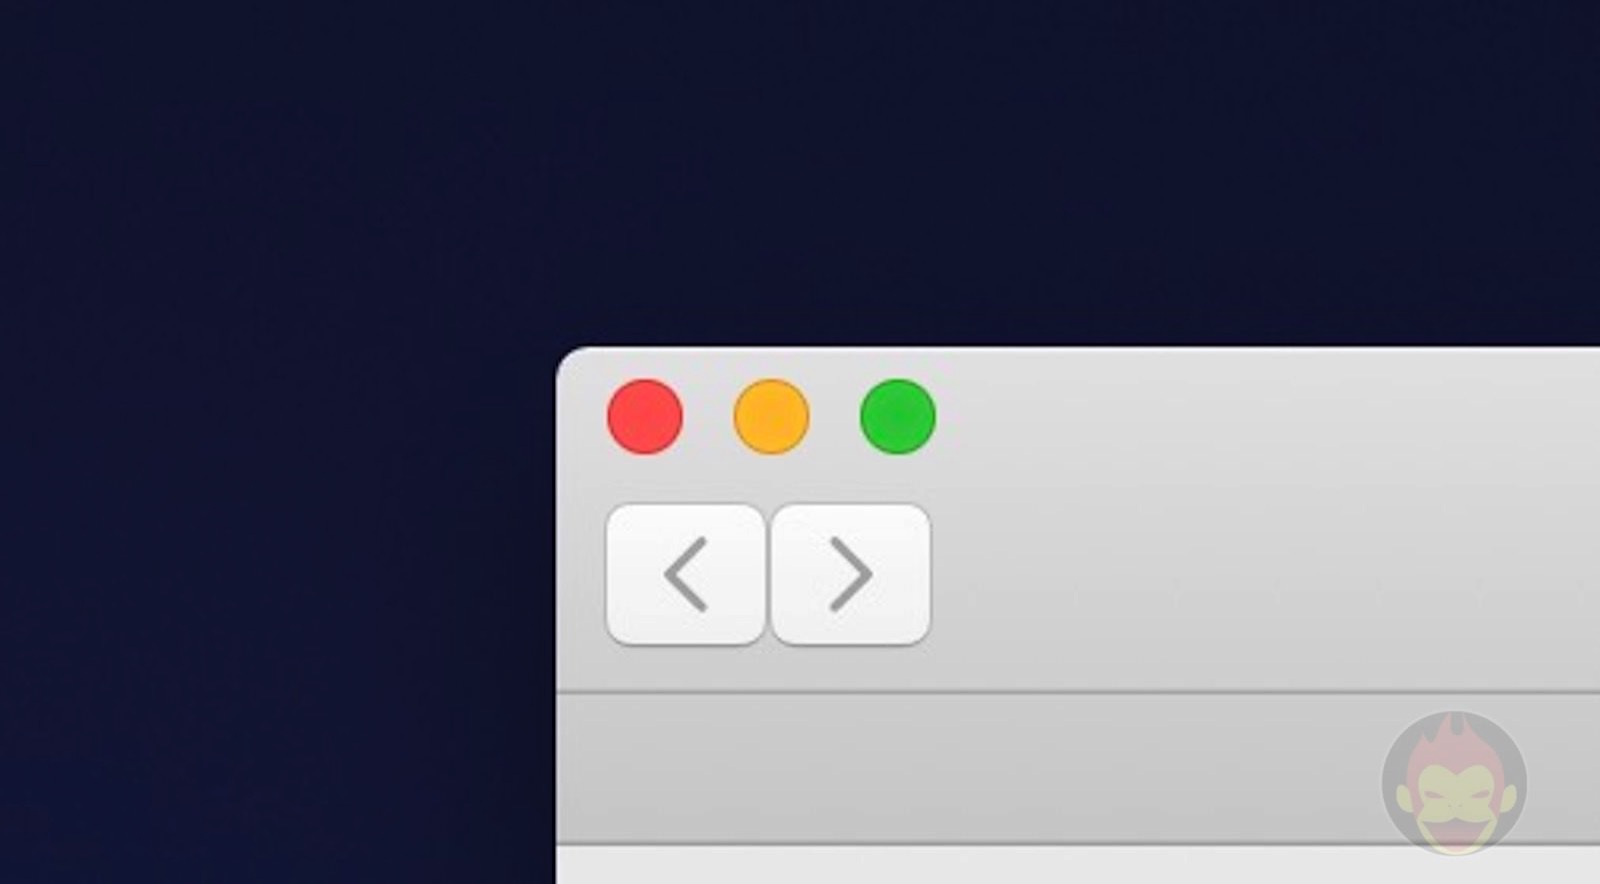 Finder buttons